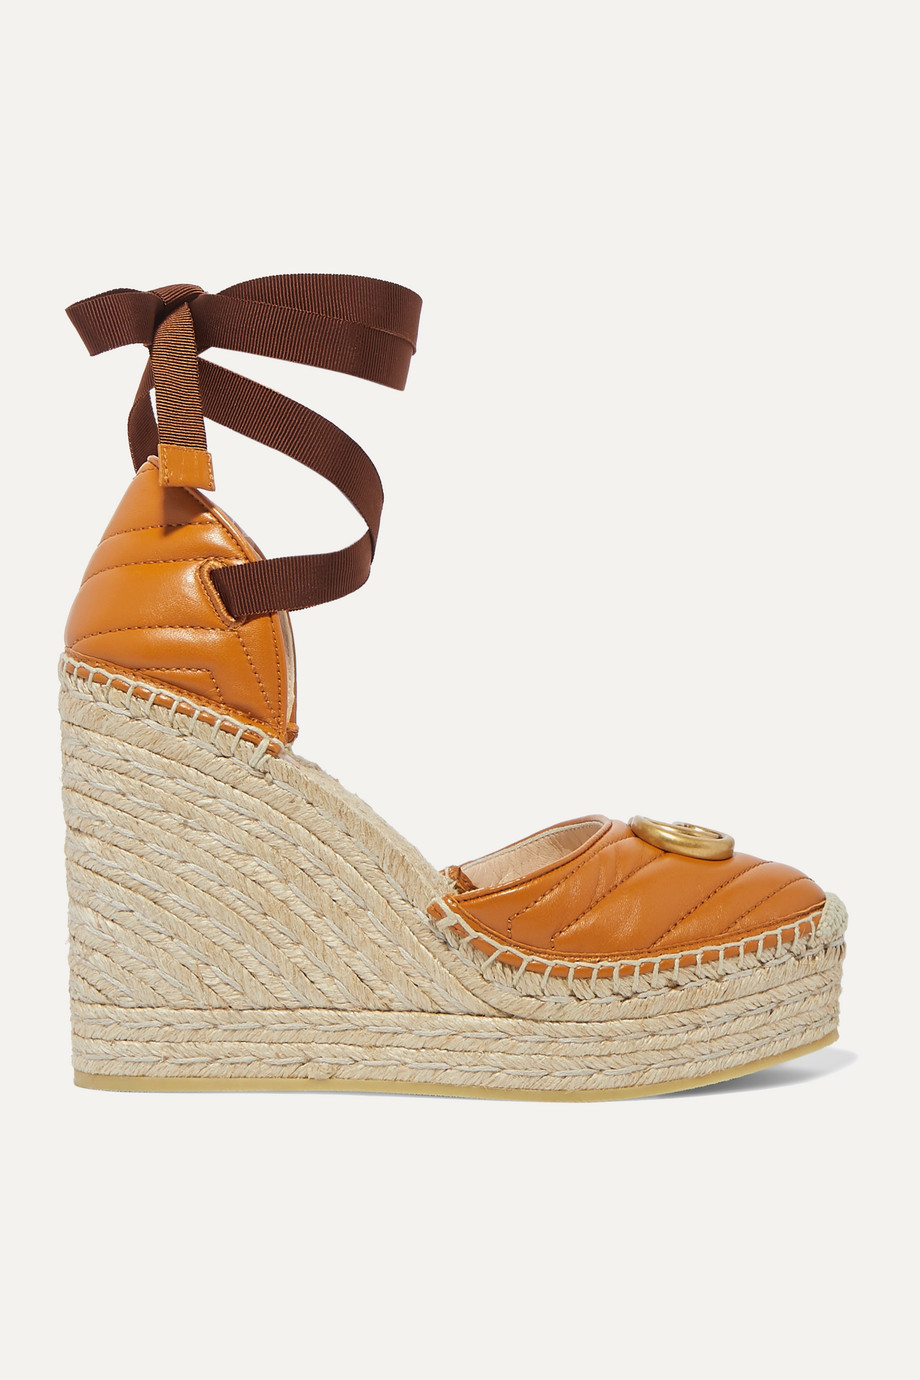 Gucci Pilar logo-embellished quilted leather wedge espadrilles